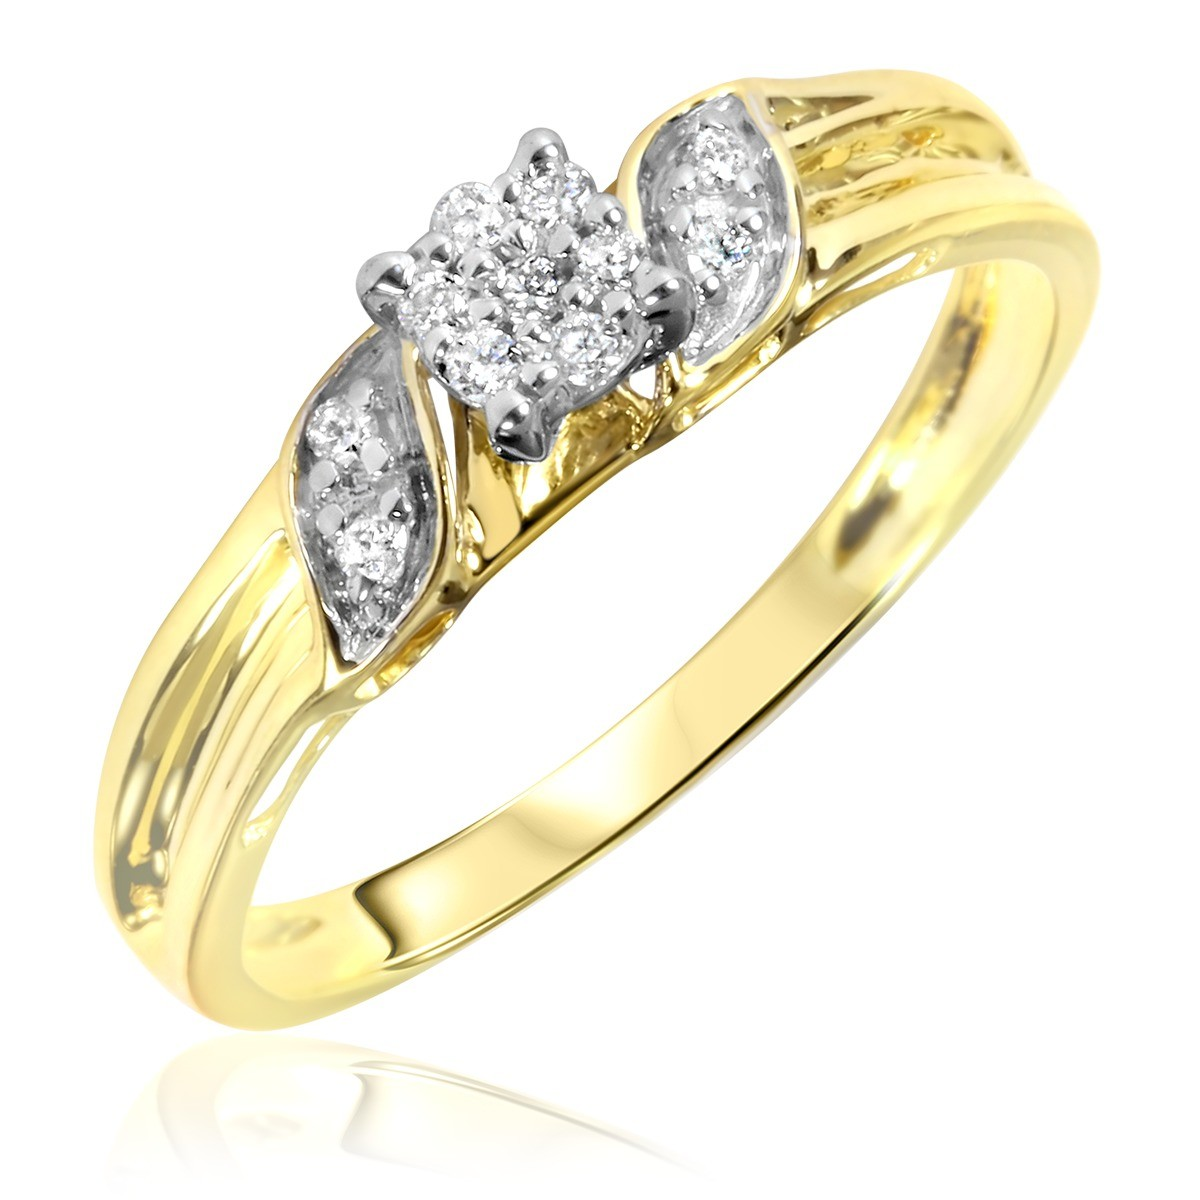 1/10 Carat T.W. Diamond Women's Engagement Ring 14K Yellow Gold